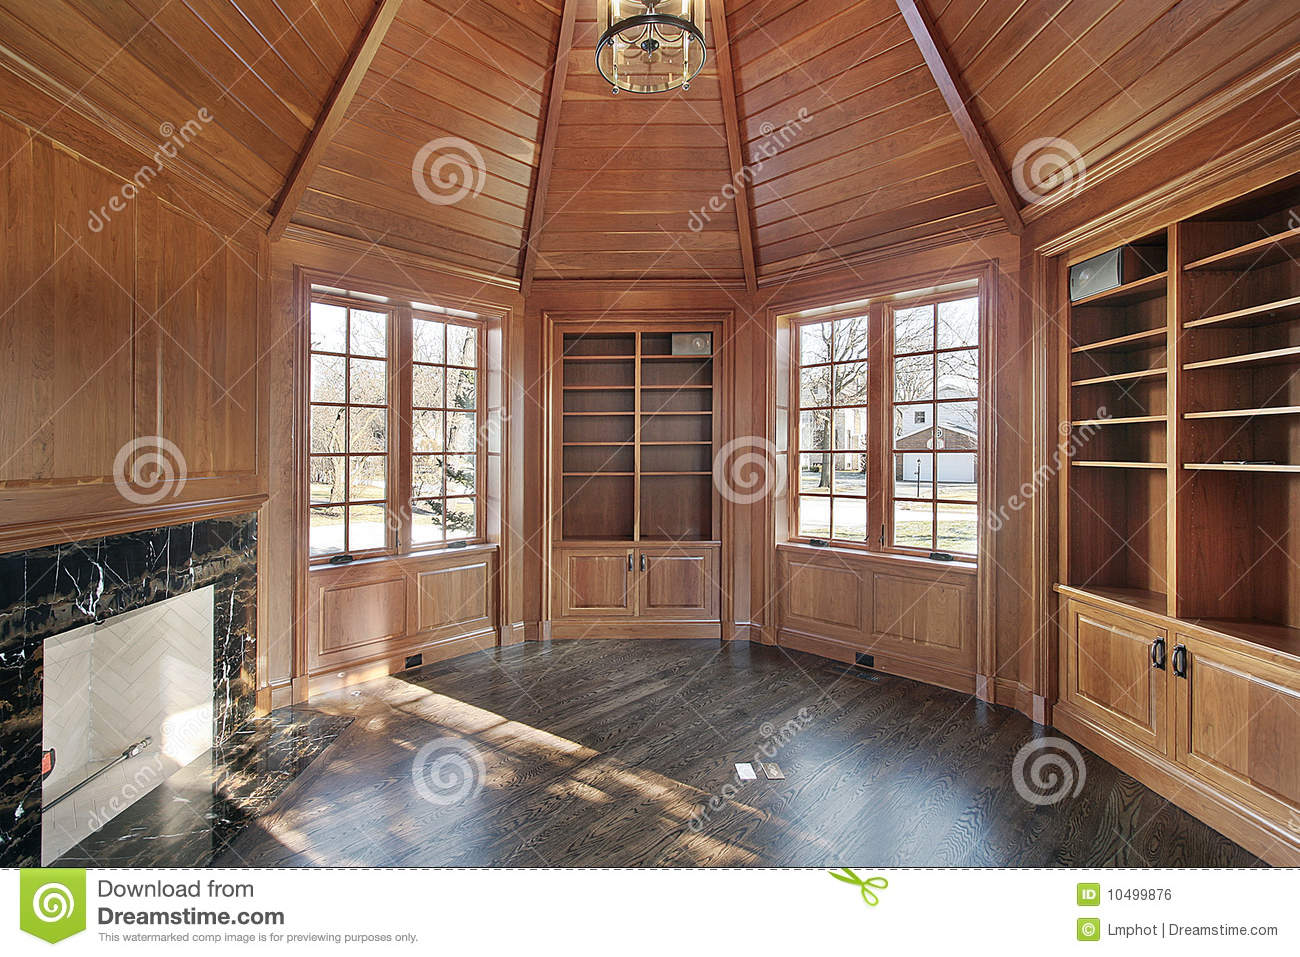 Groovy Cherry Wood Paneling Library Royalty Free Stock Image Image 9005626 Largest Home Design Picture Inspirations Pitcheantrous